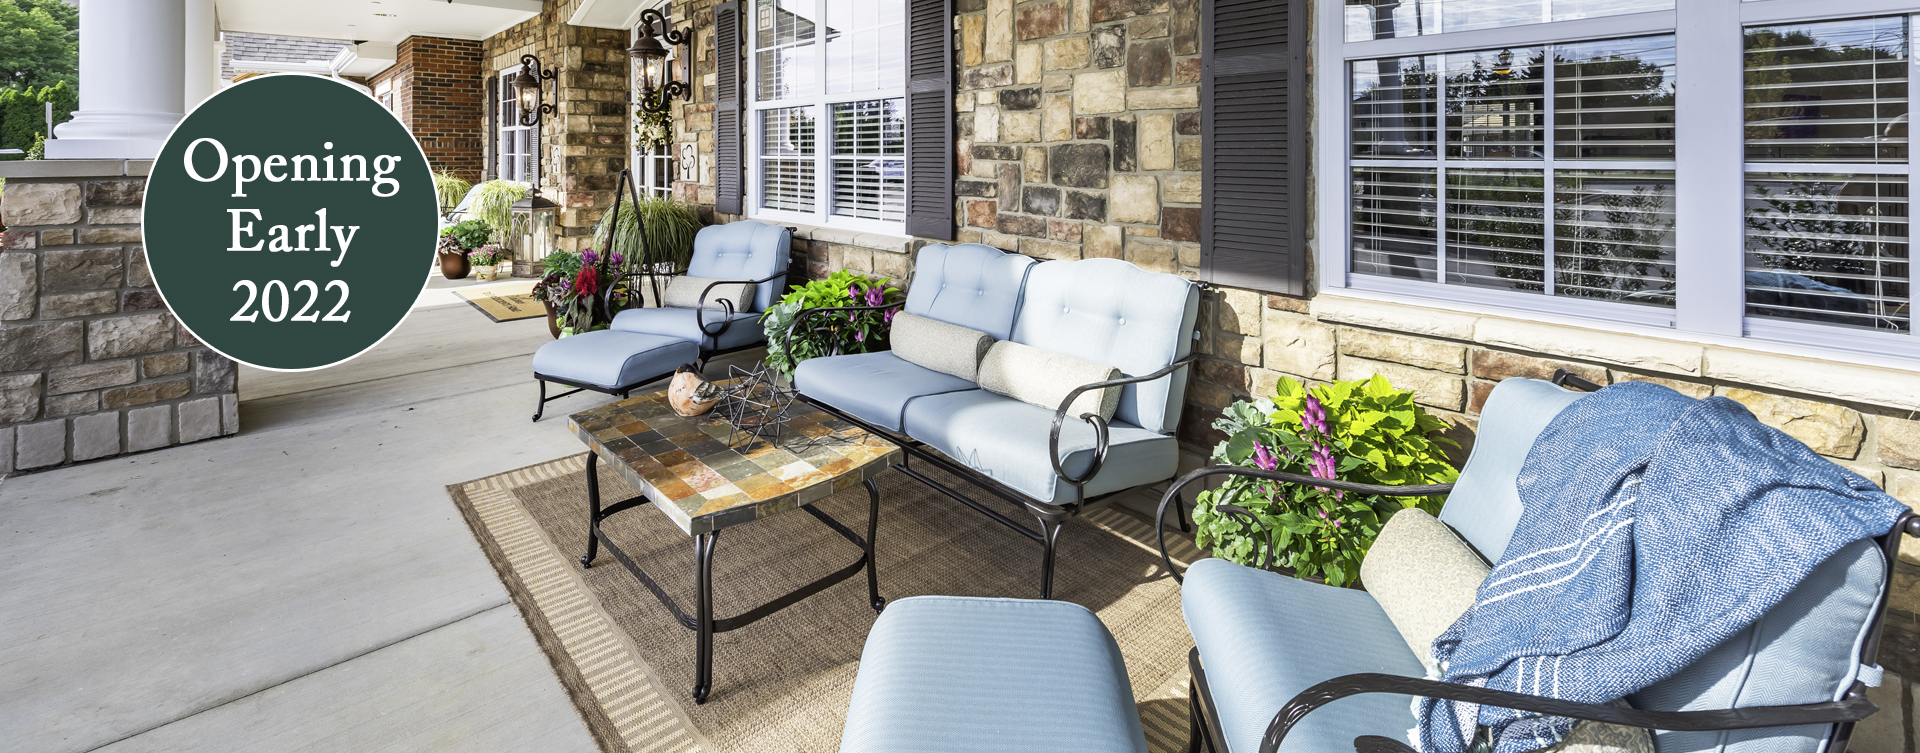 Relax in your favorite chair on the porch at Bickford of Chesapeake